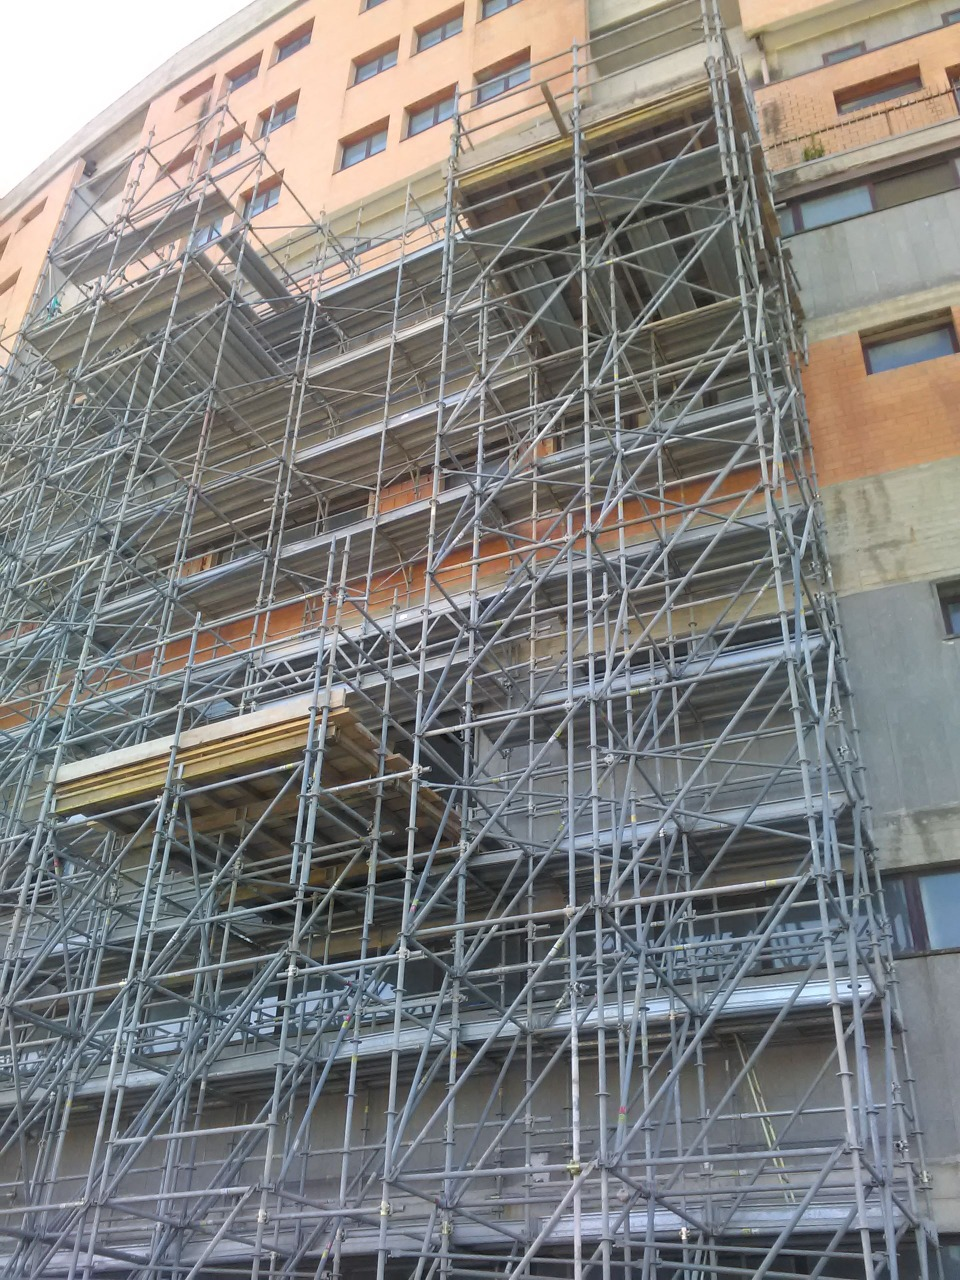 Gallery foto n.1 Multiceta towers - Reinforcing of a hospital